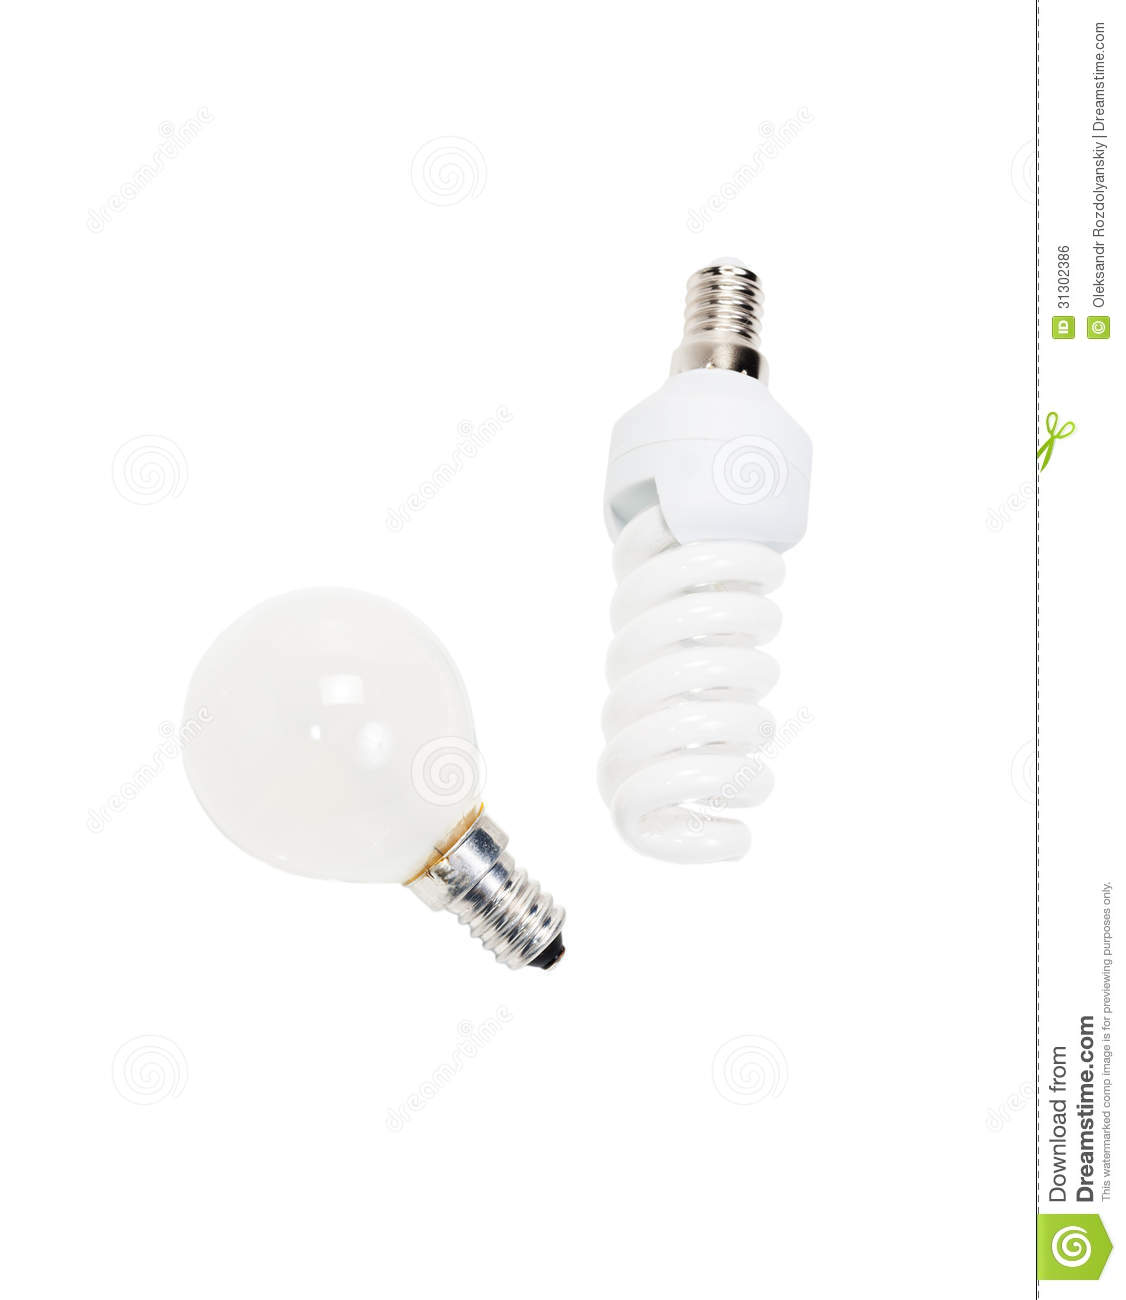 Fluorescent And Incandescent Lamp Royalty Free Stock Image